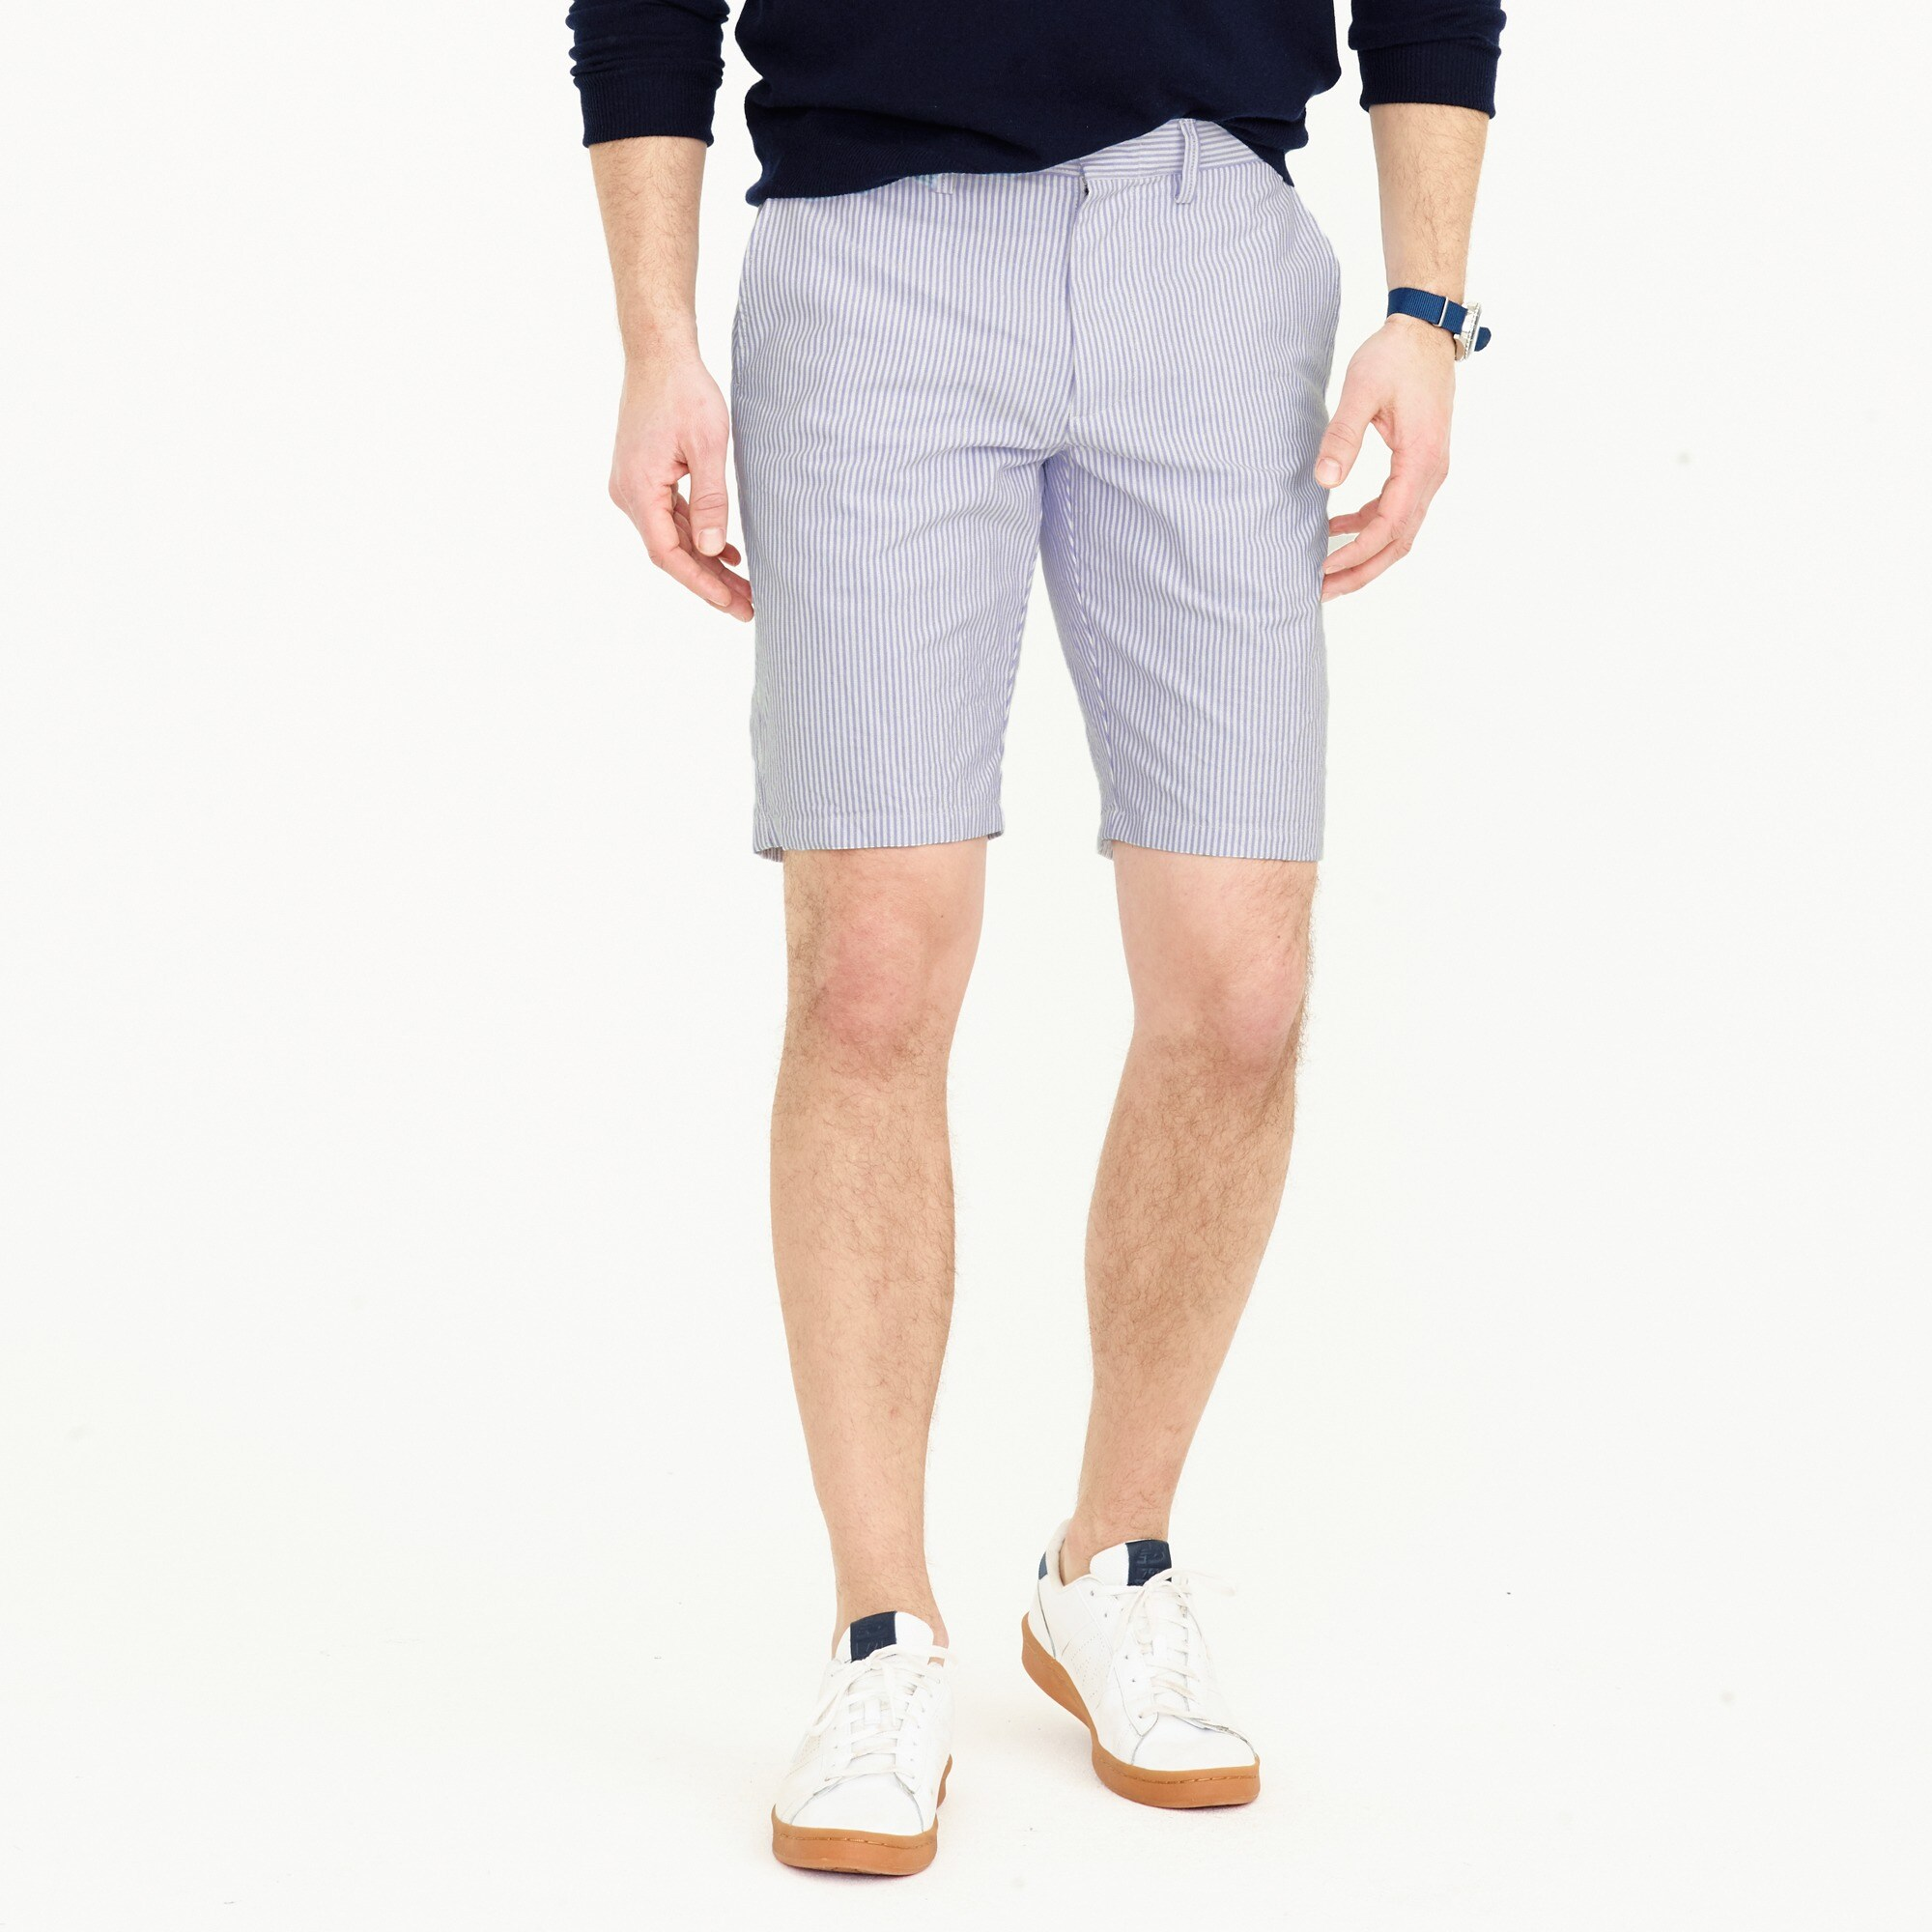 "10.5"" short in blue stripe : men's shorts"